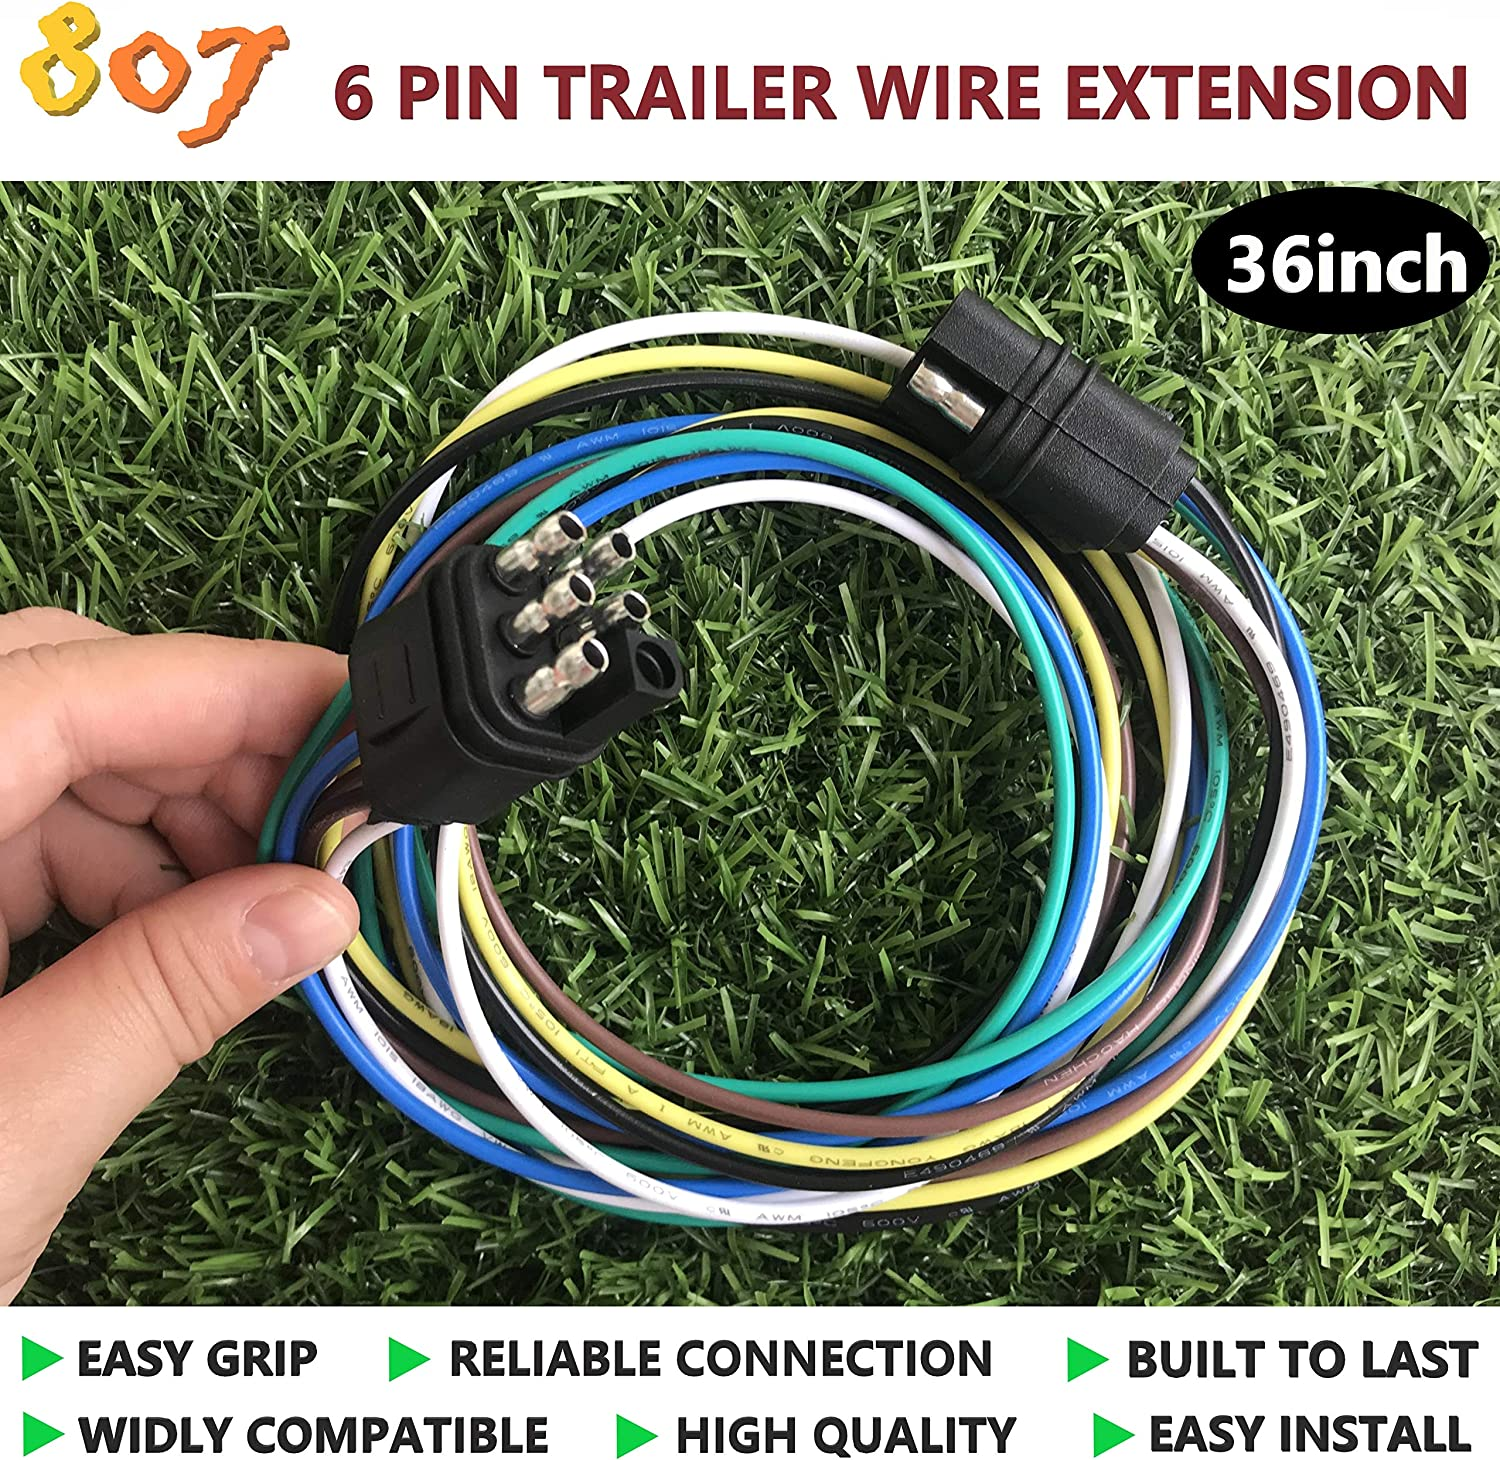 3-Way Flat 2//3//4//5//6//8 Way Trailer Wire Extension 36inchs for LED Brake Tailgate Light Bars,Hitch Light Trailer Wiring Harness Extension Connector 3 Way Flat 807 2//3//4//5//6//8 pin Trailer Connector